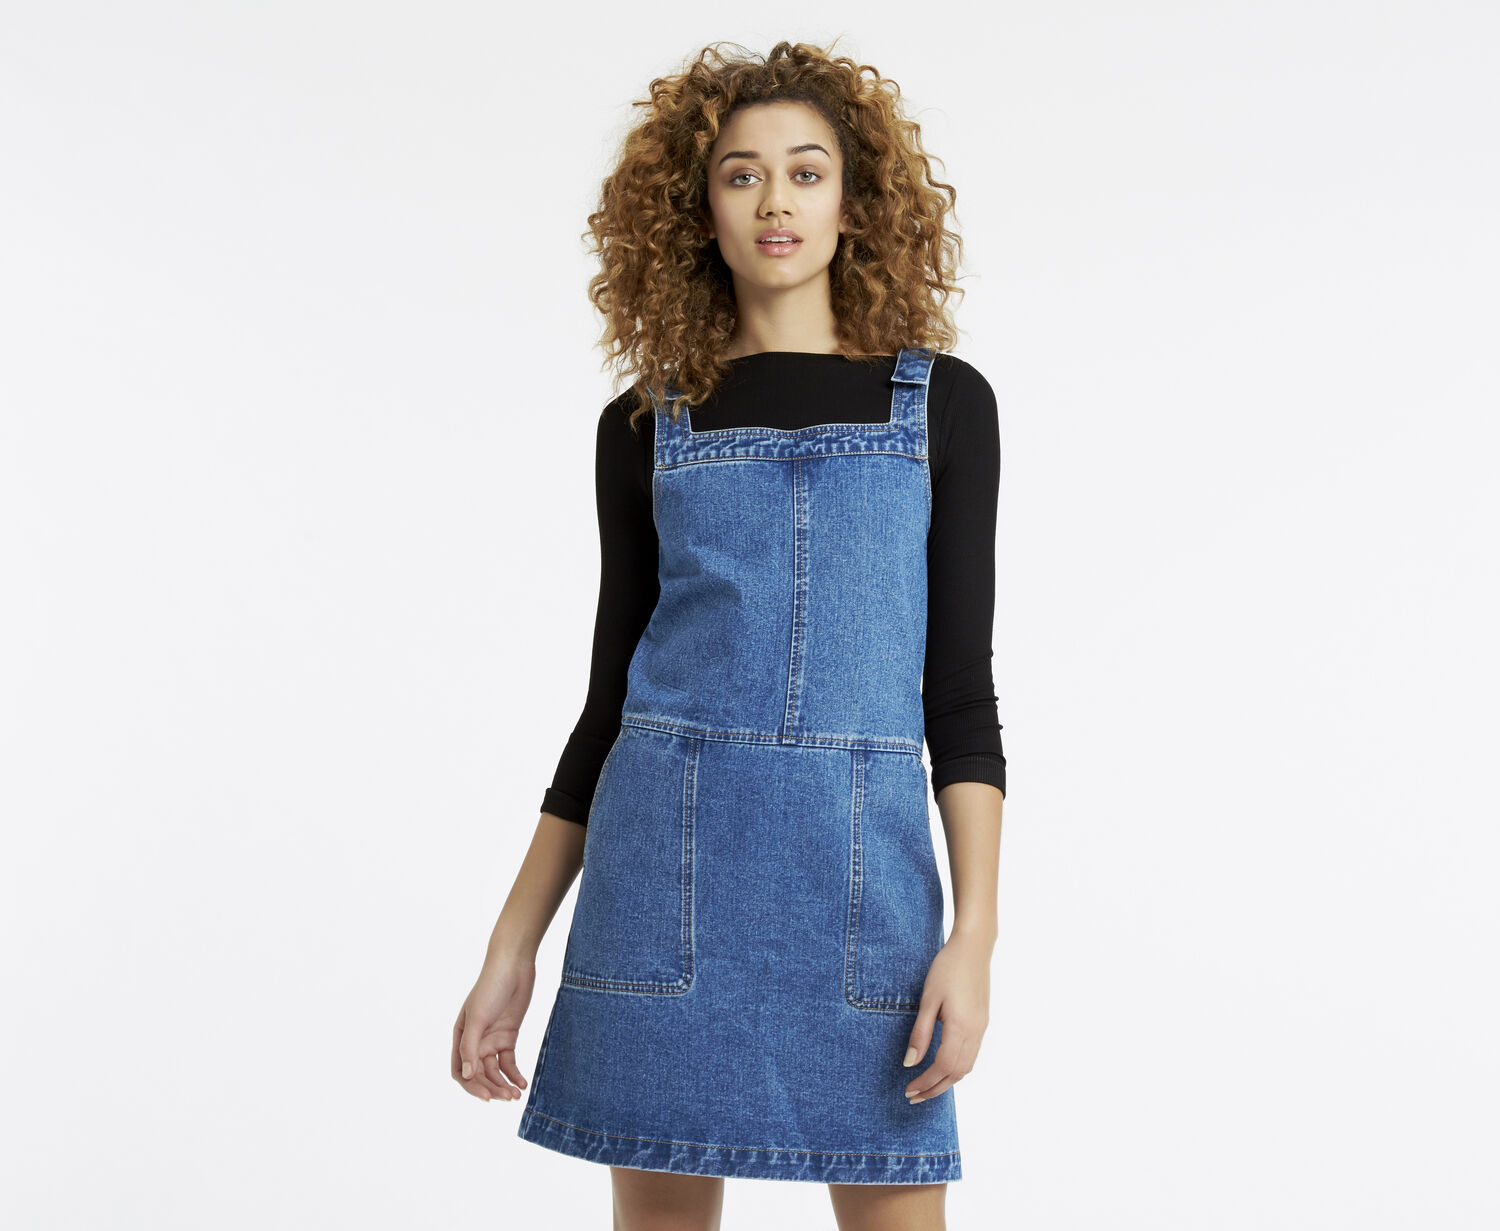 Elegant Urban Renewal Vintage Re-Made Denim Dungaree Dress | Klu00e4der | Pinterest | Urban Outfitters ...